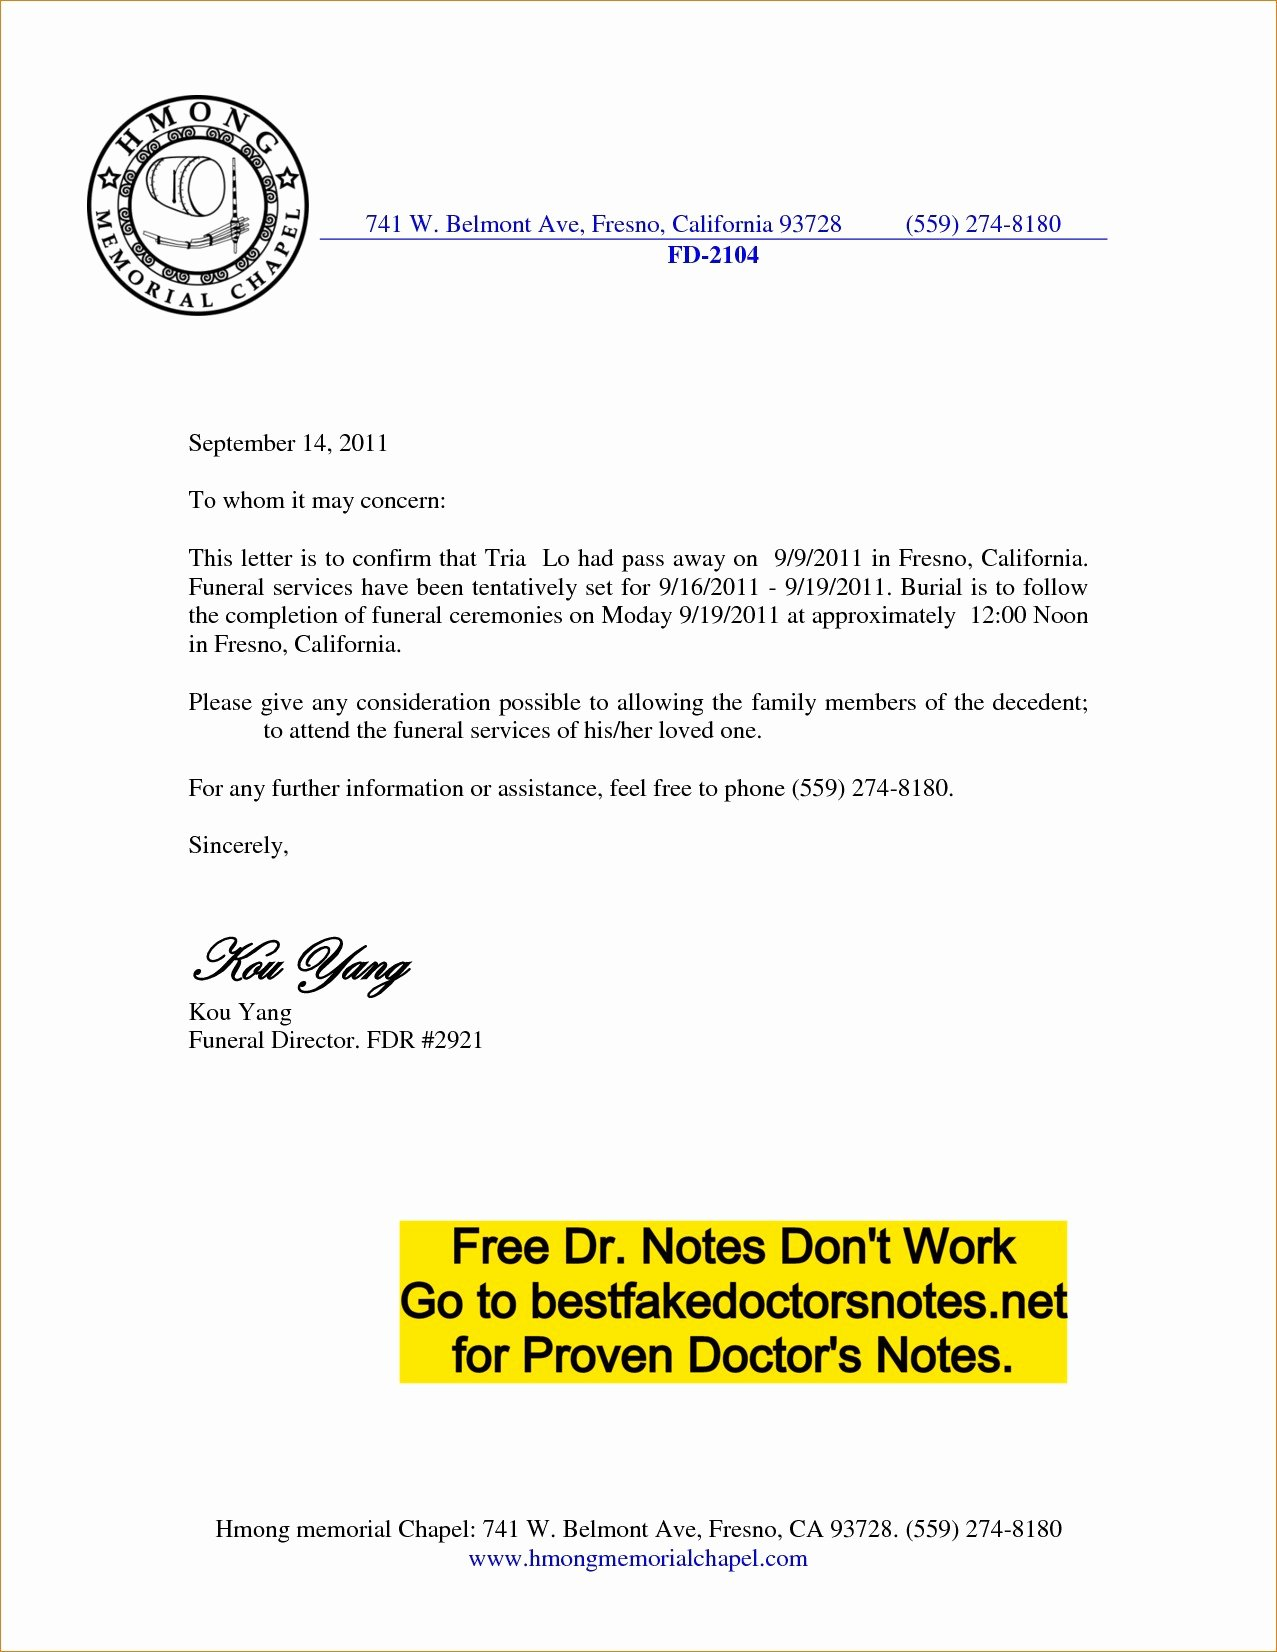 Printable Fake Doctors Notes Free New 4 Easy Ways to Use A Printable Fake Doctors Note